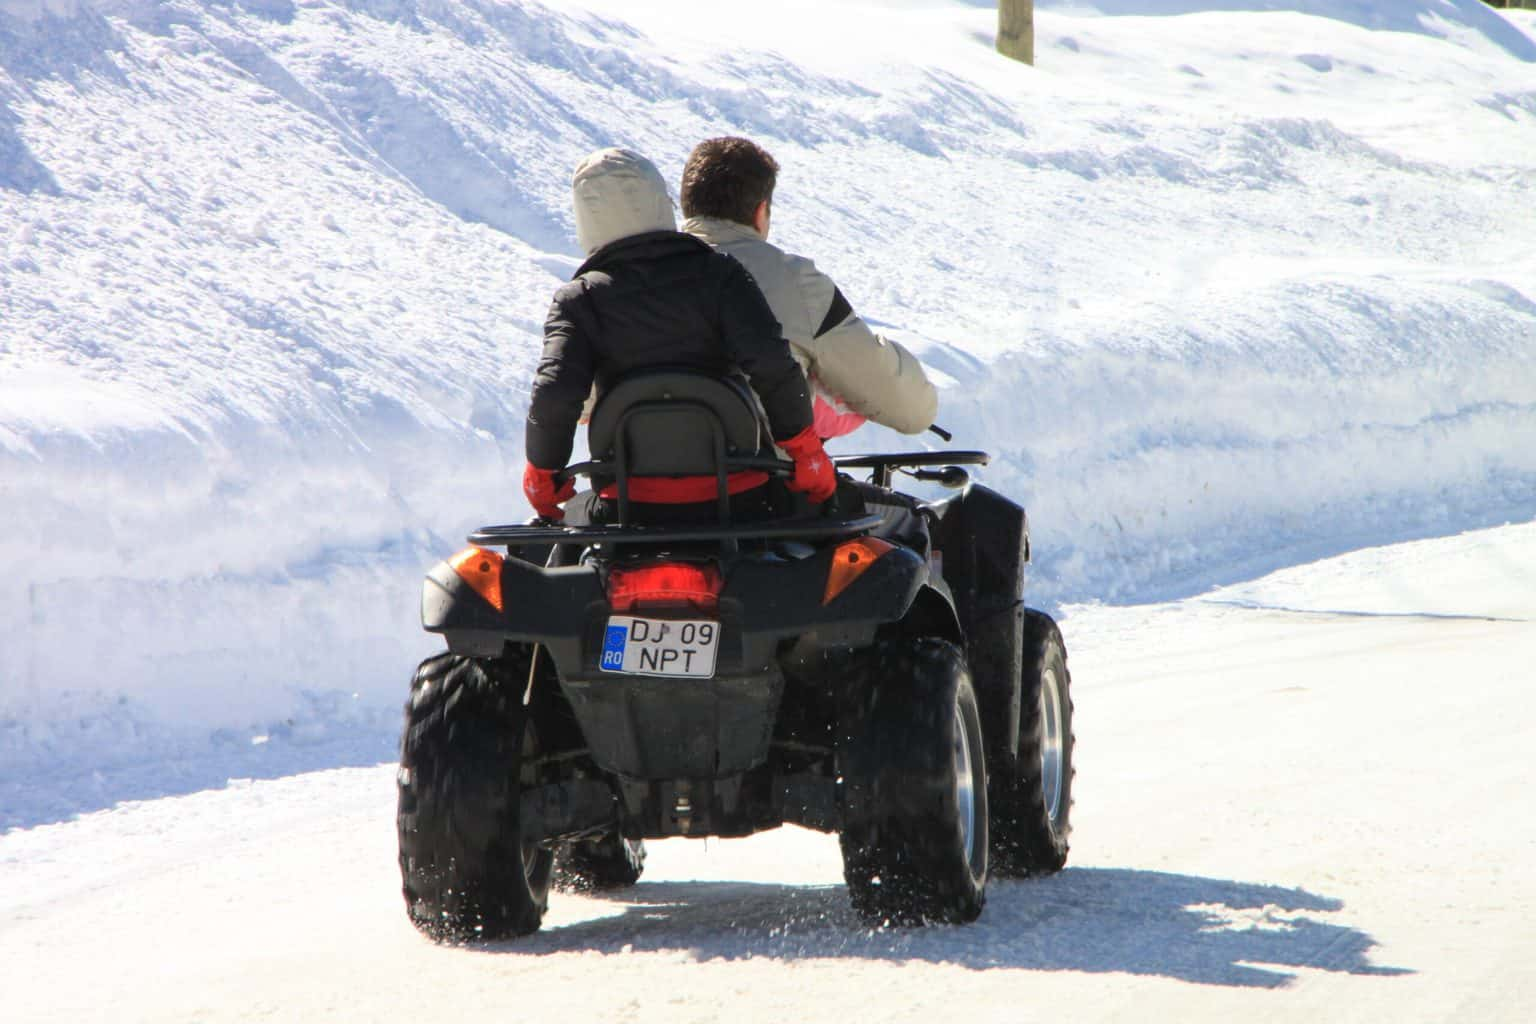 Two people riding an ATV in snow